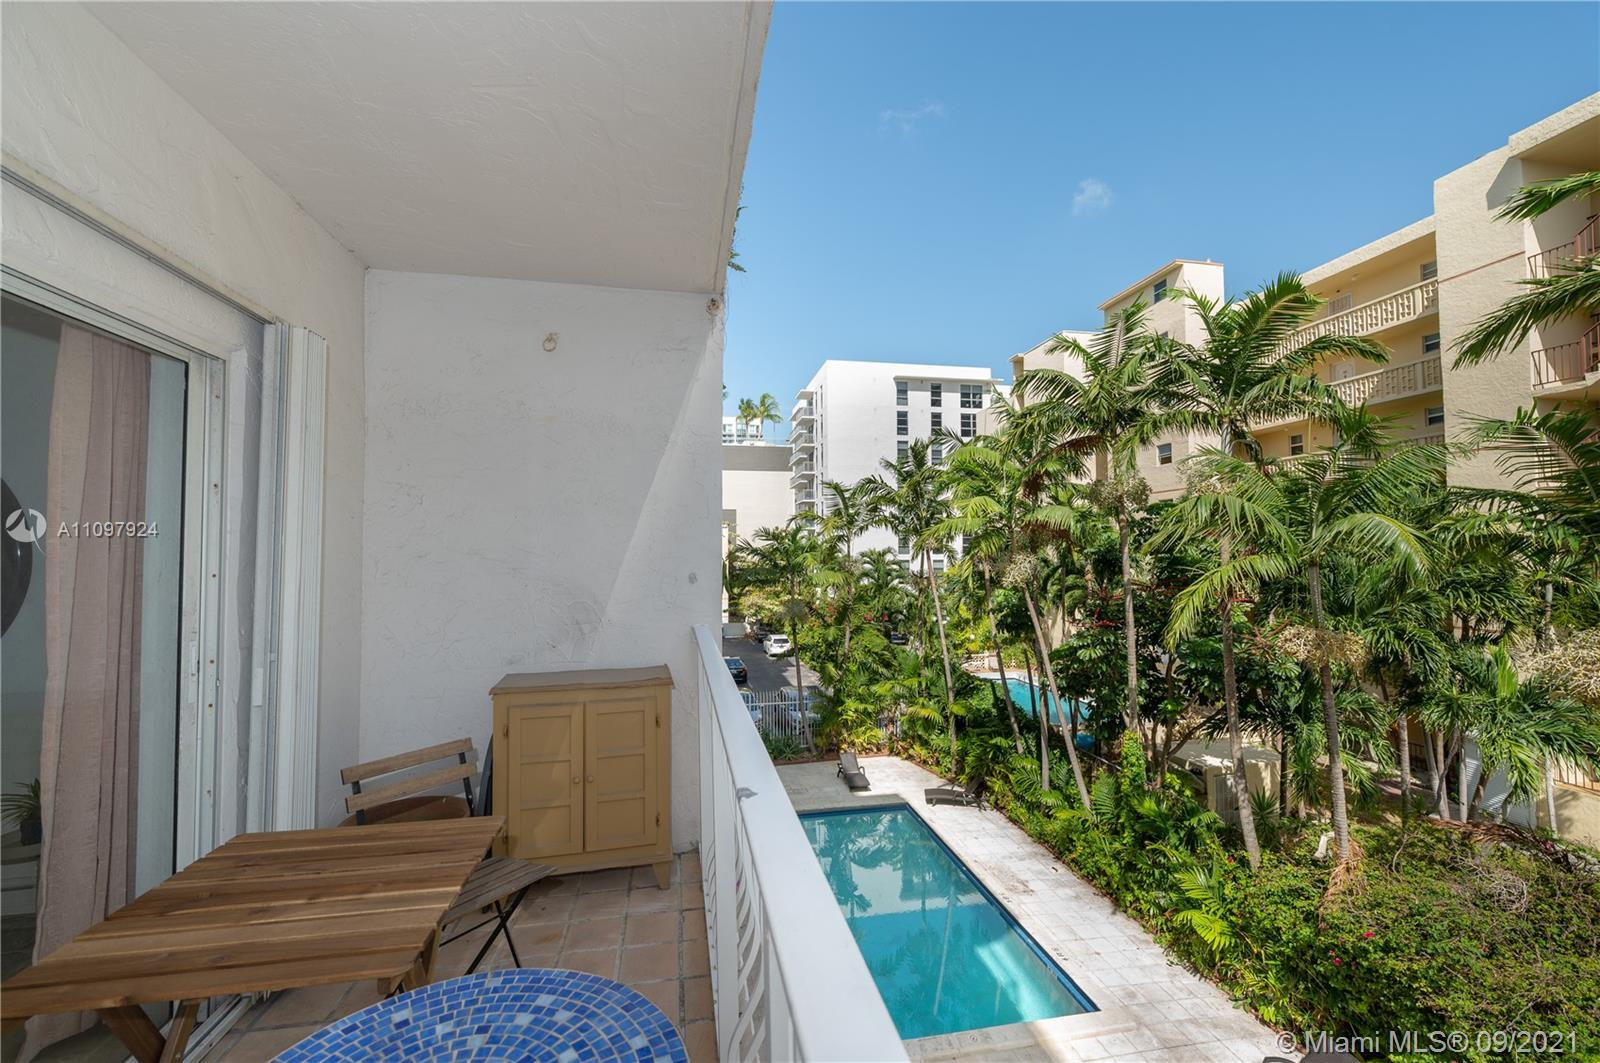 Beautifully maintained 2/1 apartment in the heart of Miami Edgewater with nice open kitchen.  Locat